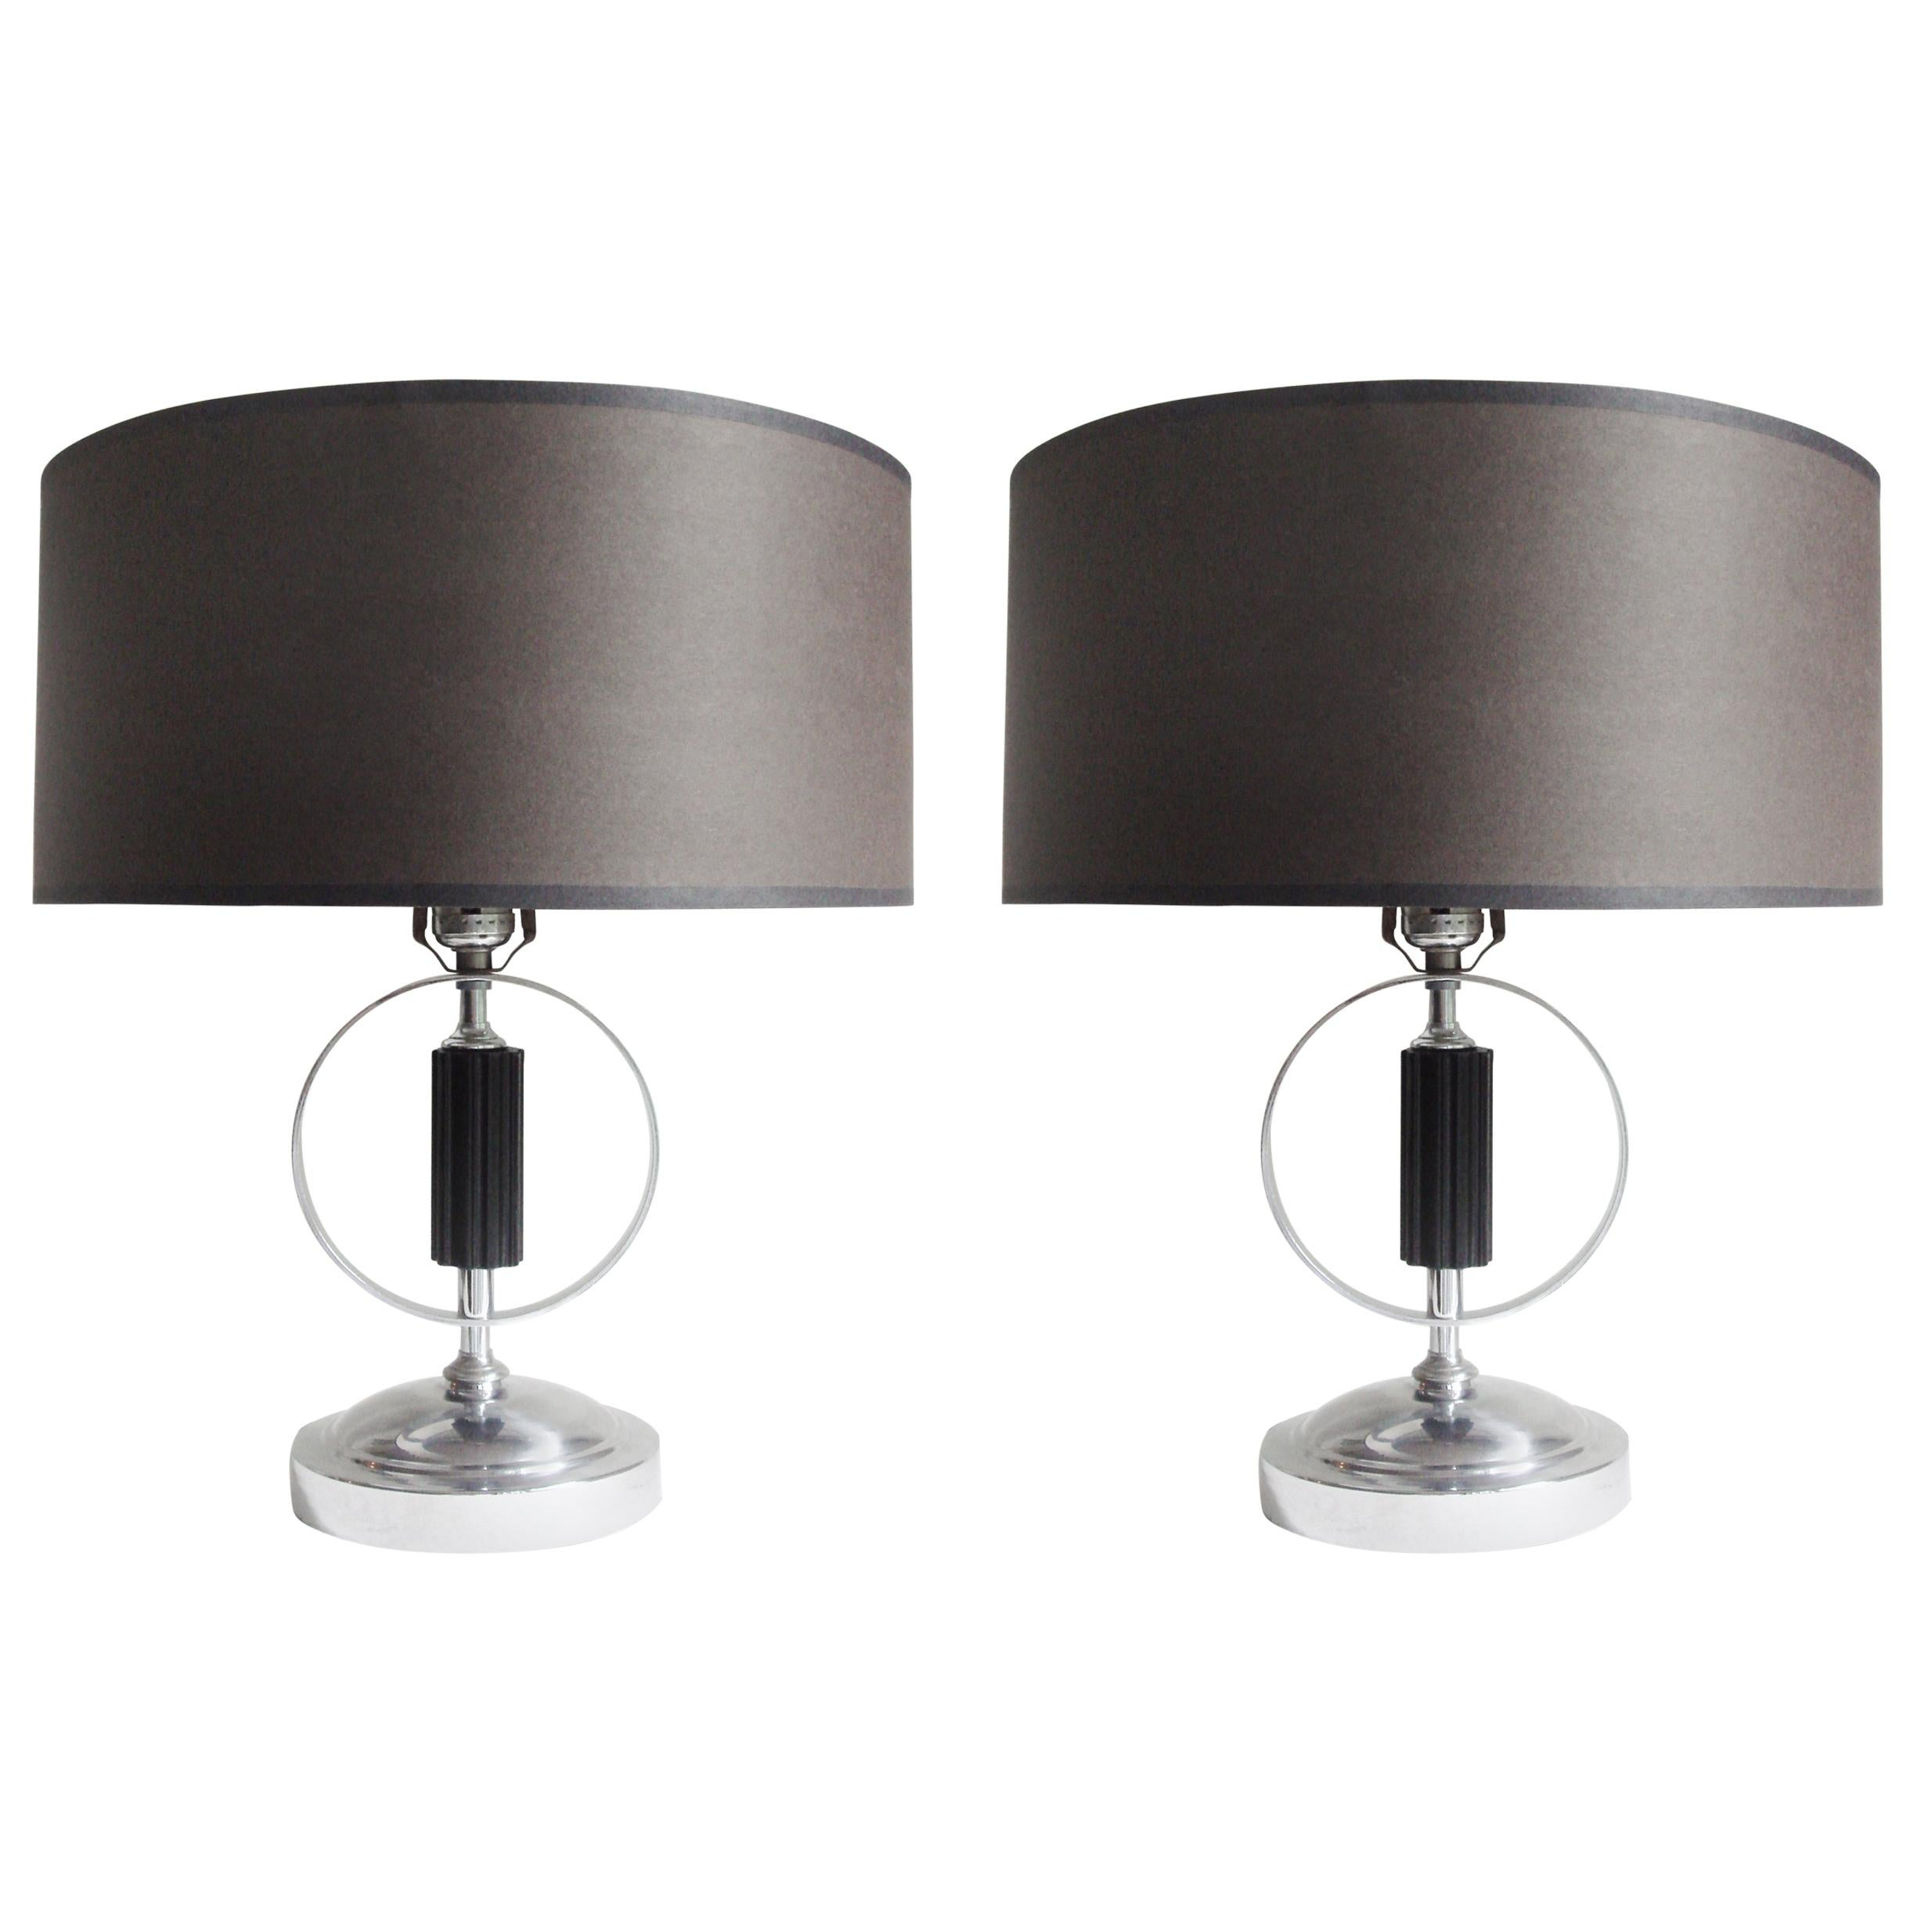 Pair of American Art Deco Chrome and Lacquered Wood Table Lamps